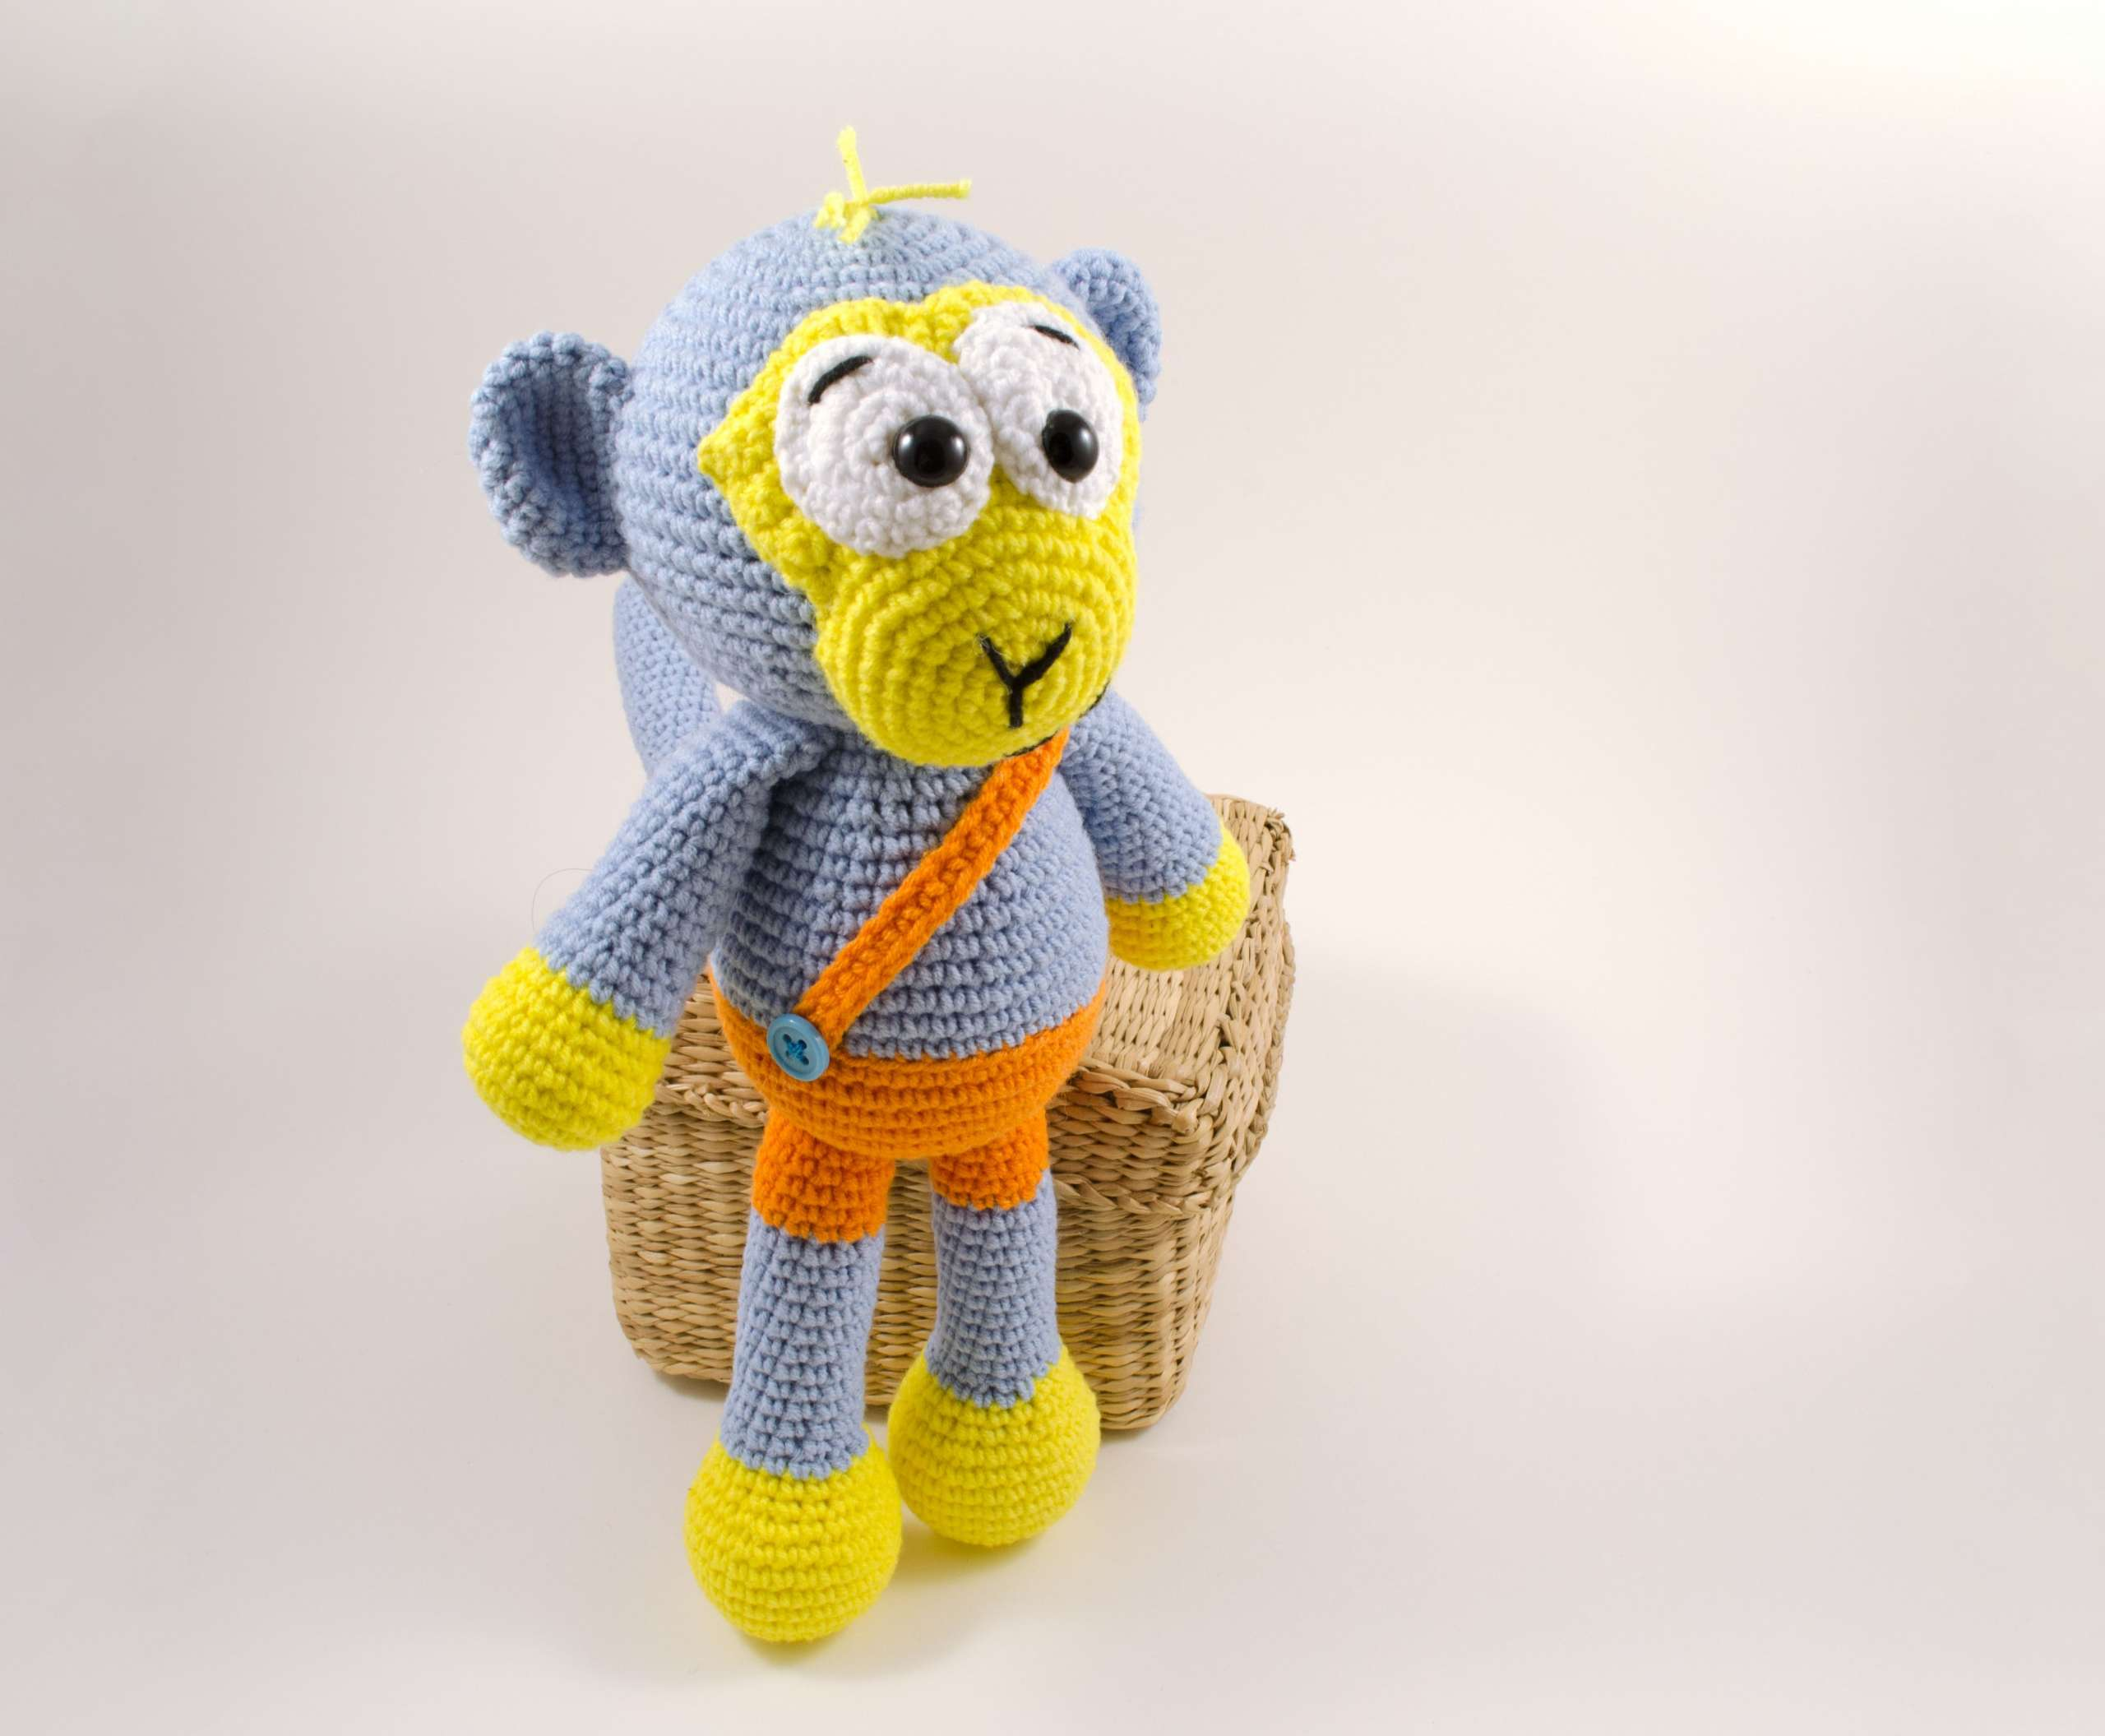 crochet blue monkey side view